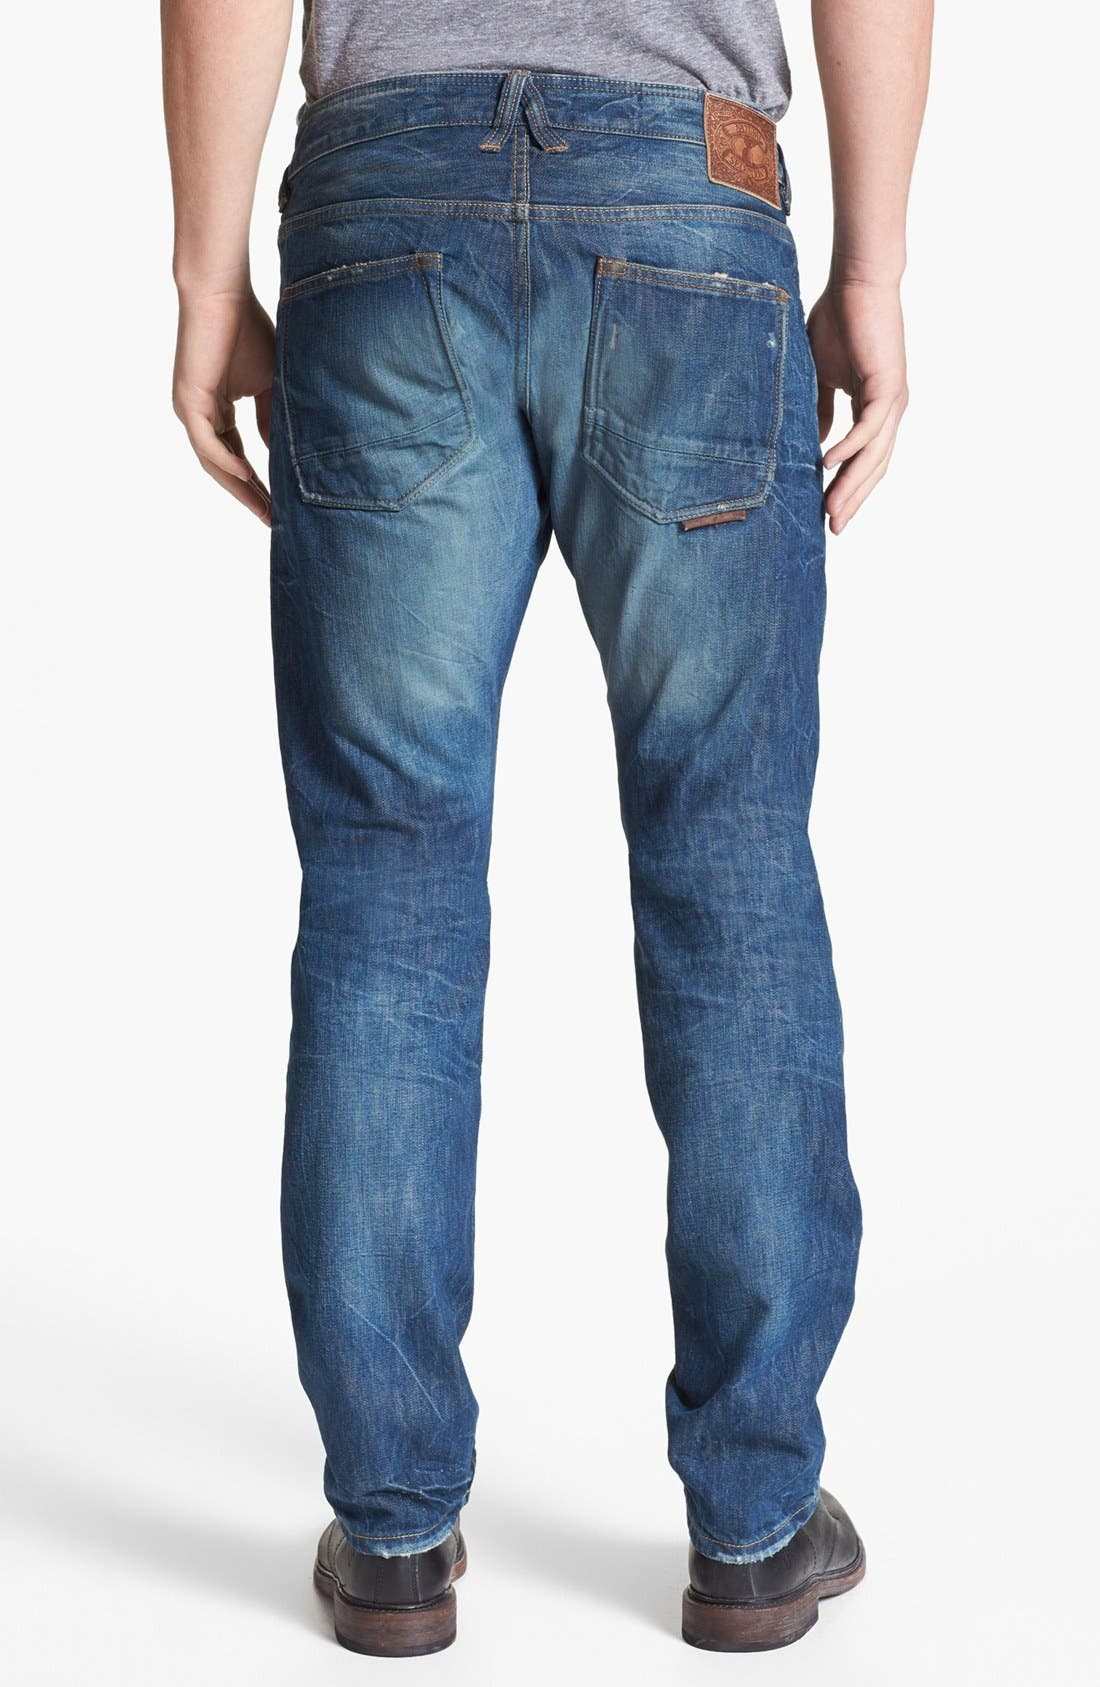 Alternate Image 1 Selected - Natural Selection Denim Narrow Slim Straight Leg Jeans (Saddle)